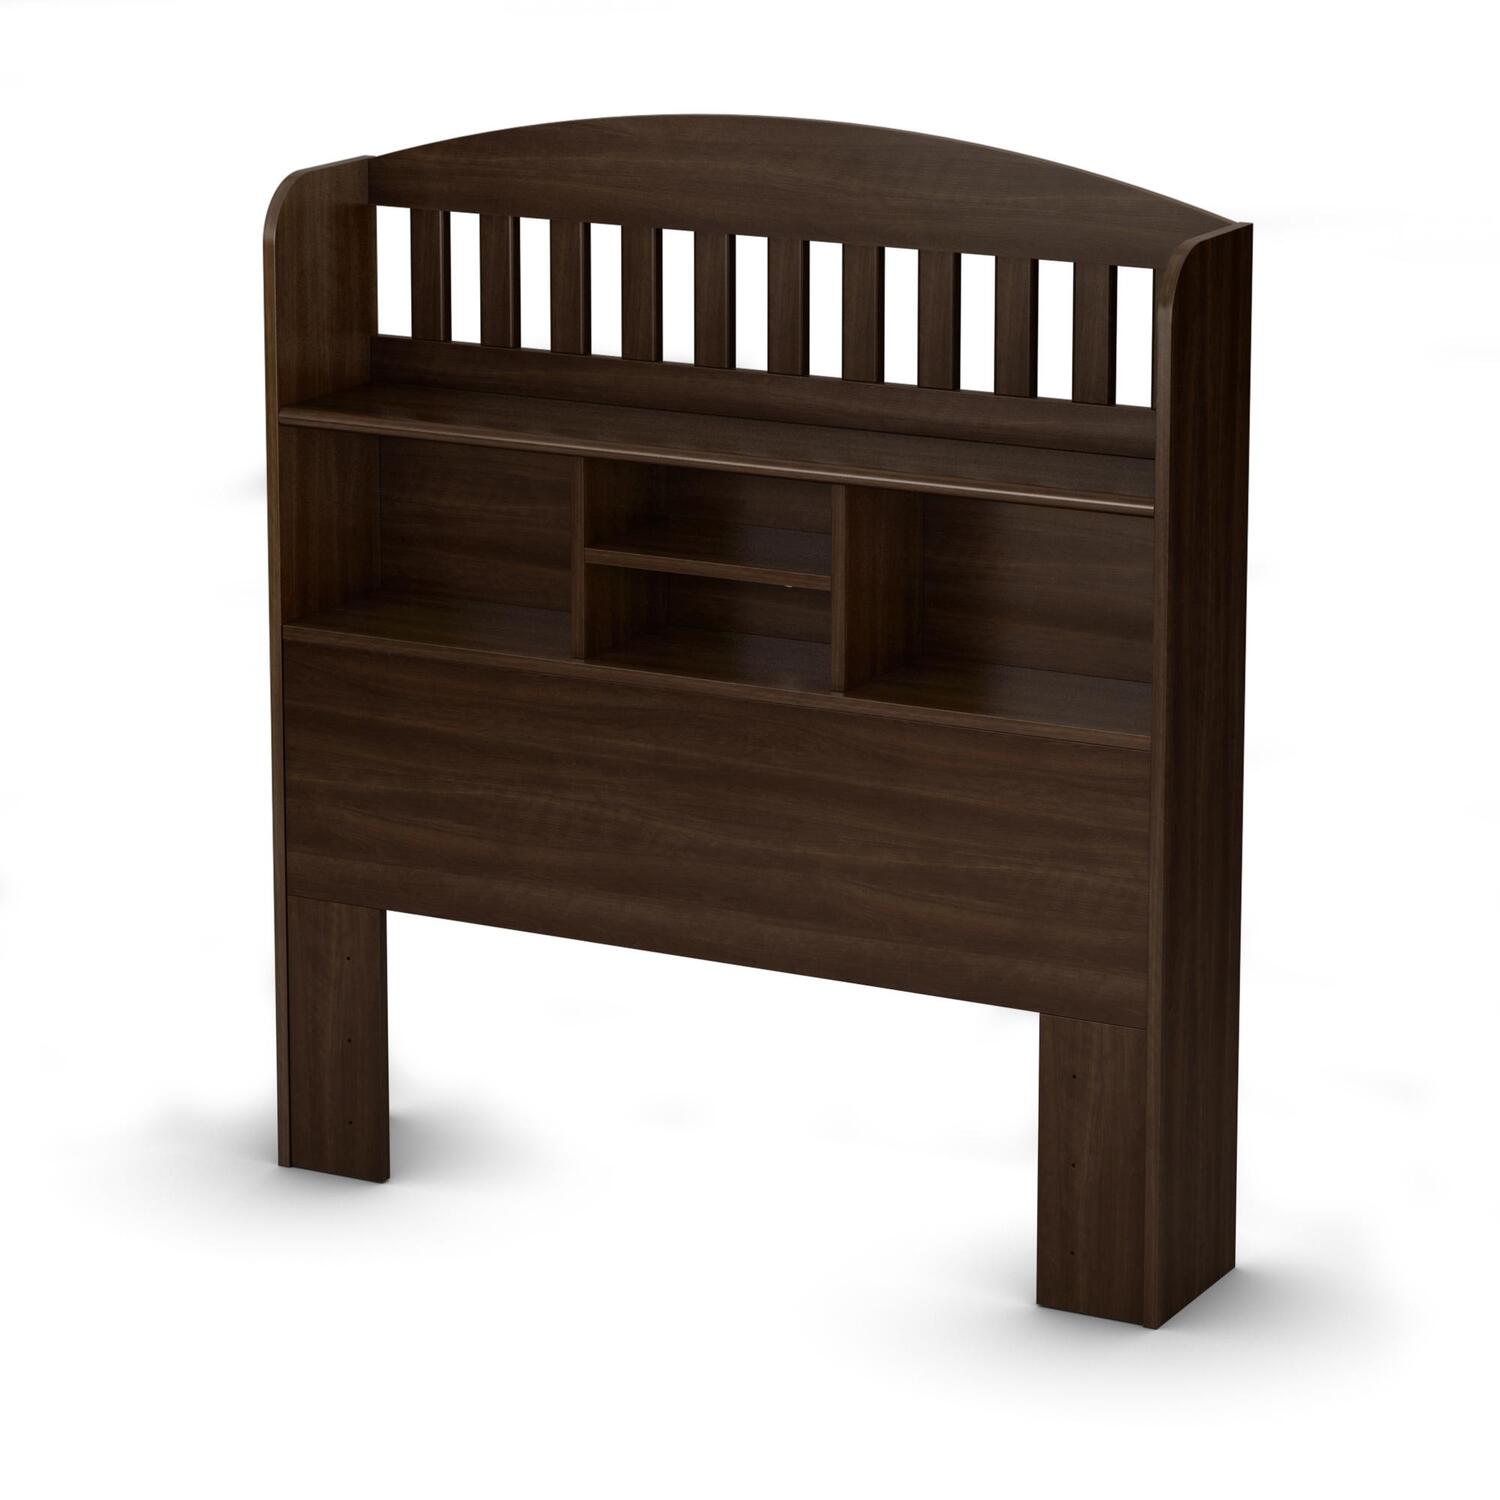 South Shore Newton Twin Bookcase Headboard 39 By OJ